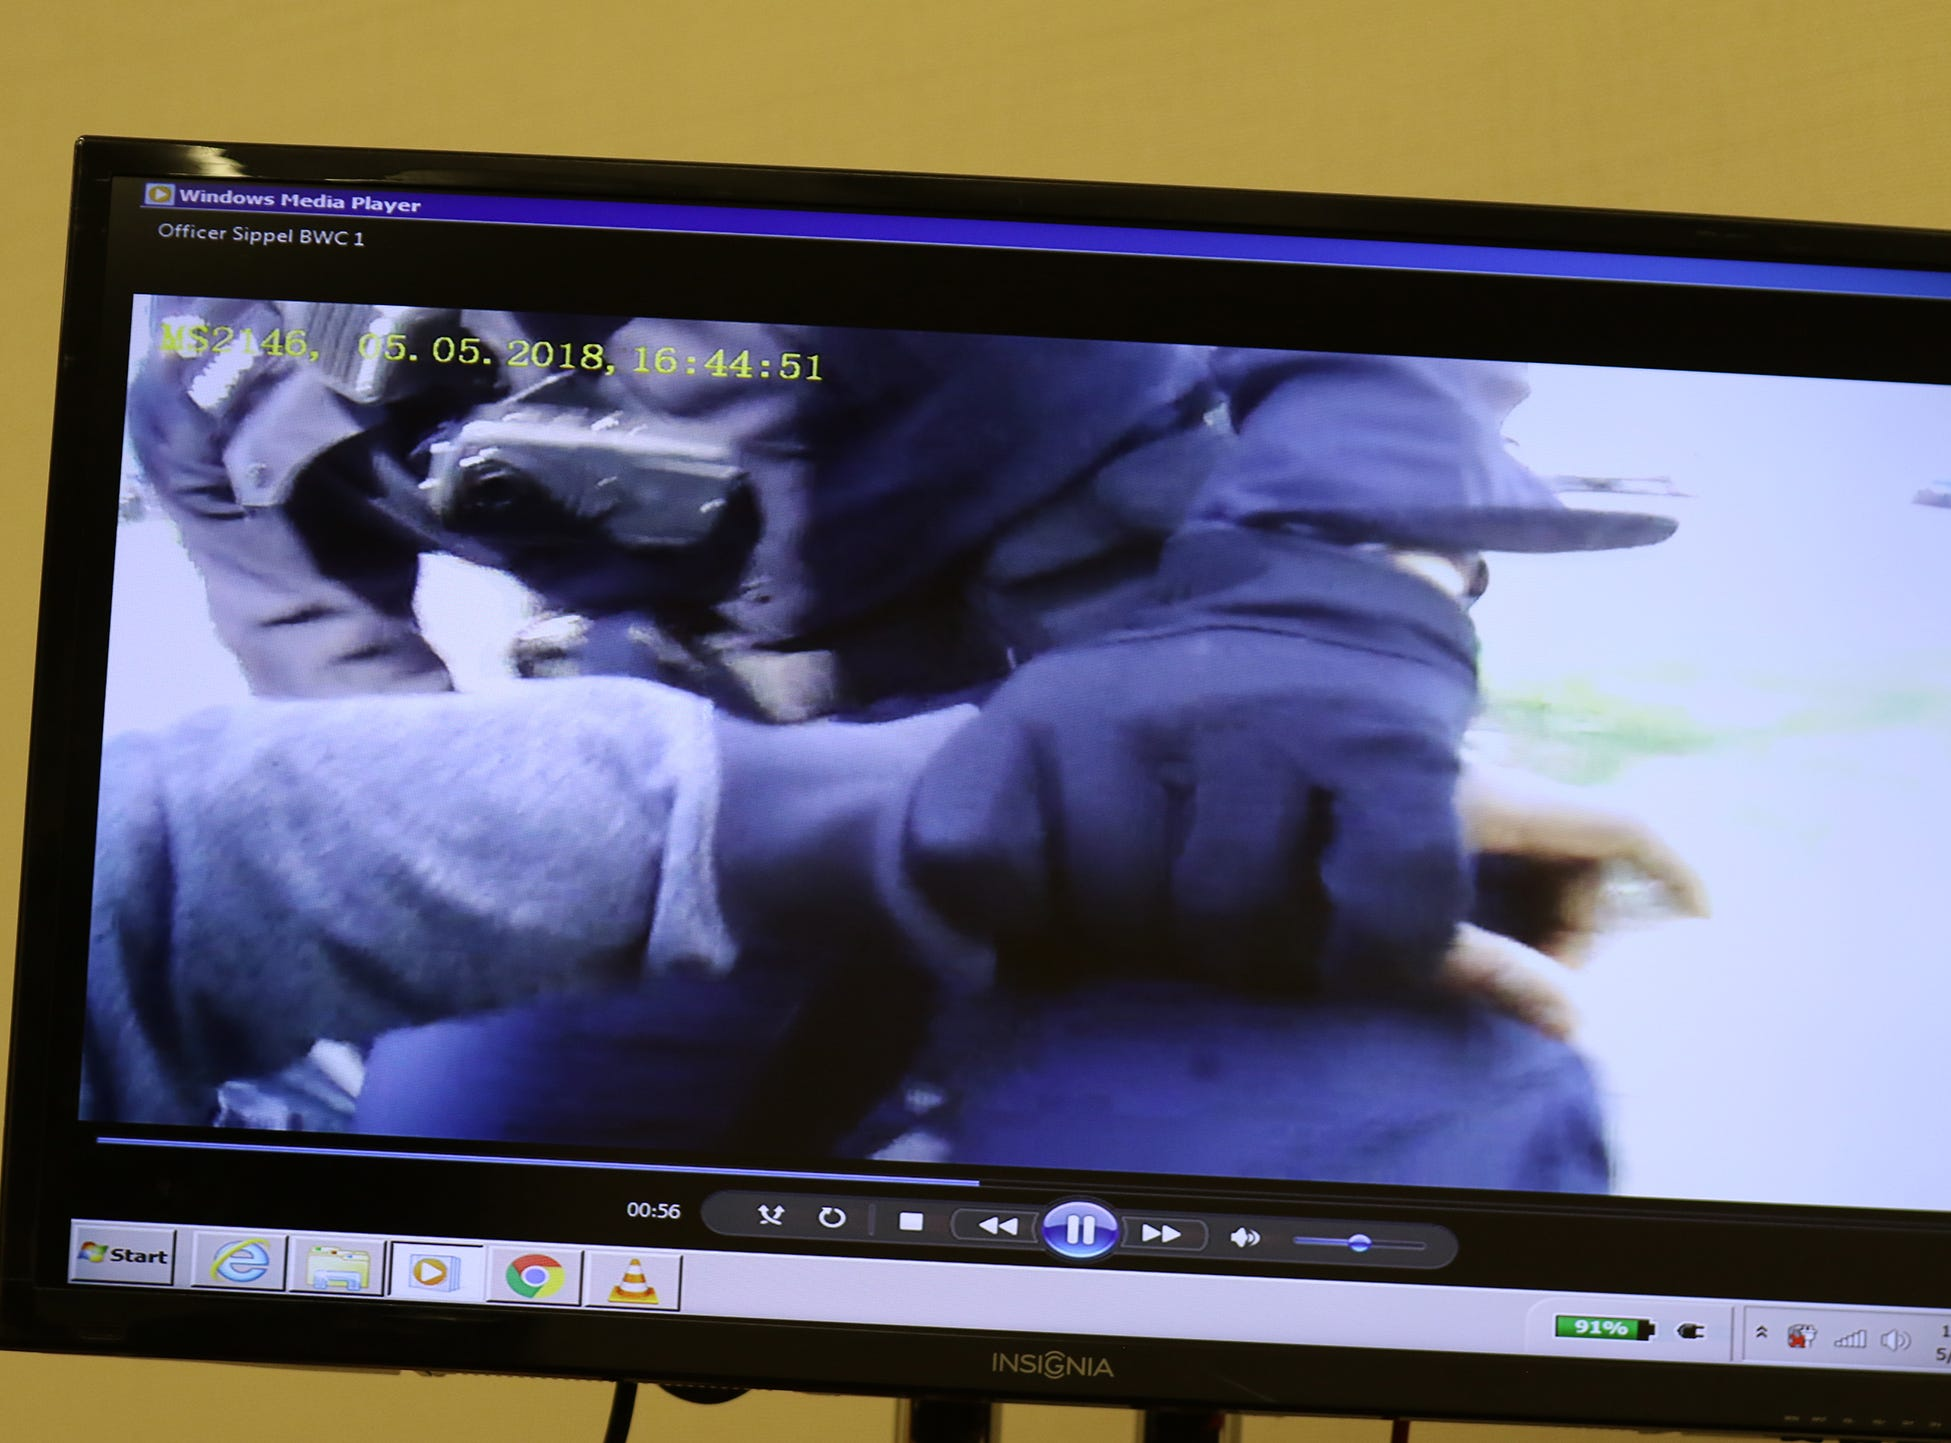 Body camera footage from Police Officer Michael Sippel showing Officer Spenser McAvoy having a grip on Christopher Pate's wrist and hand.